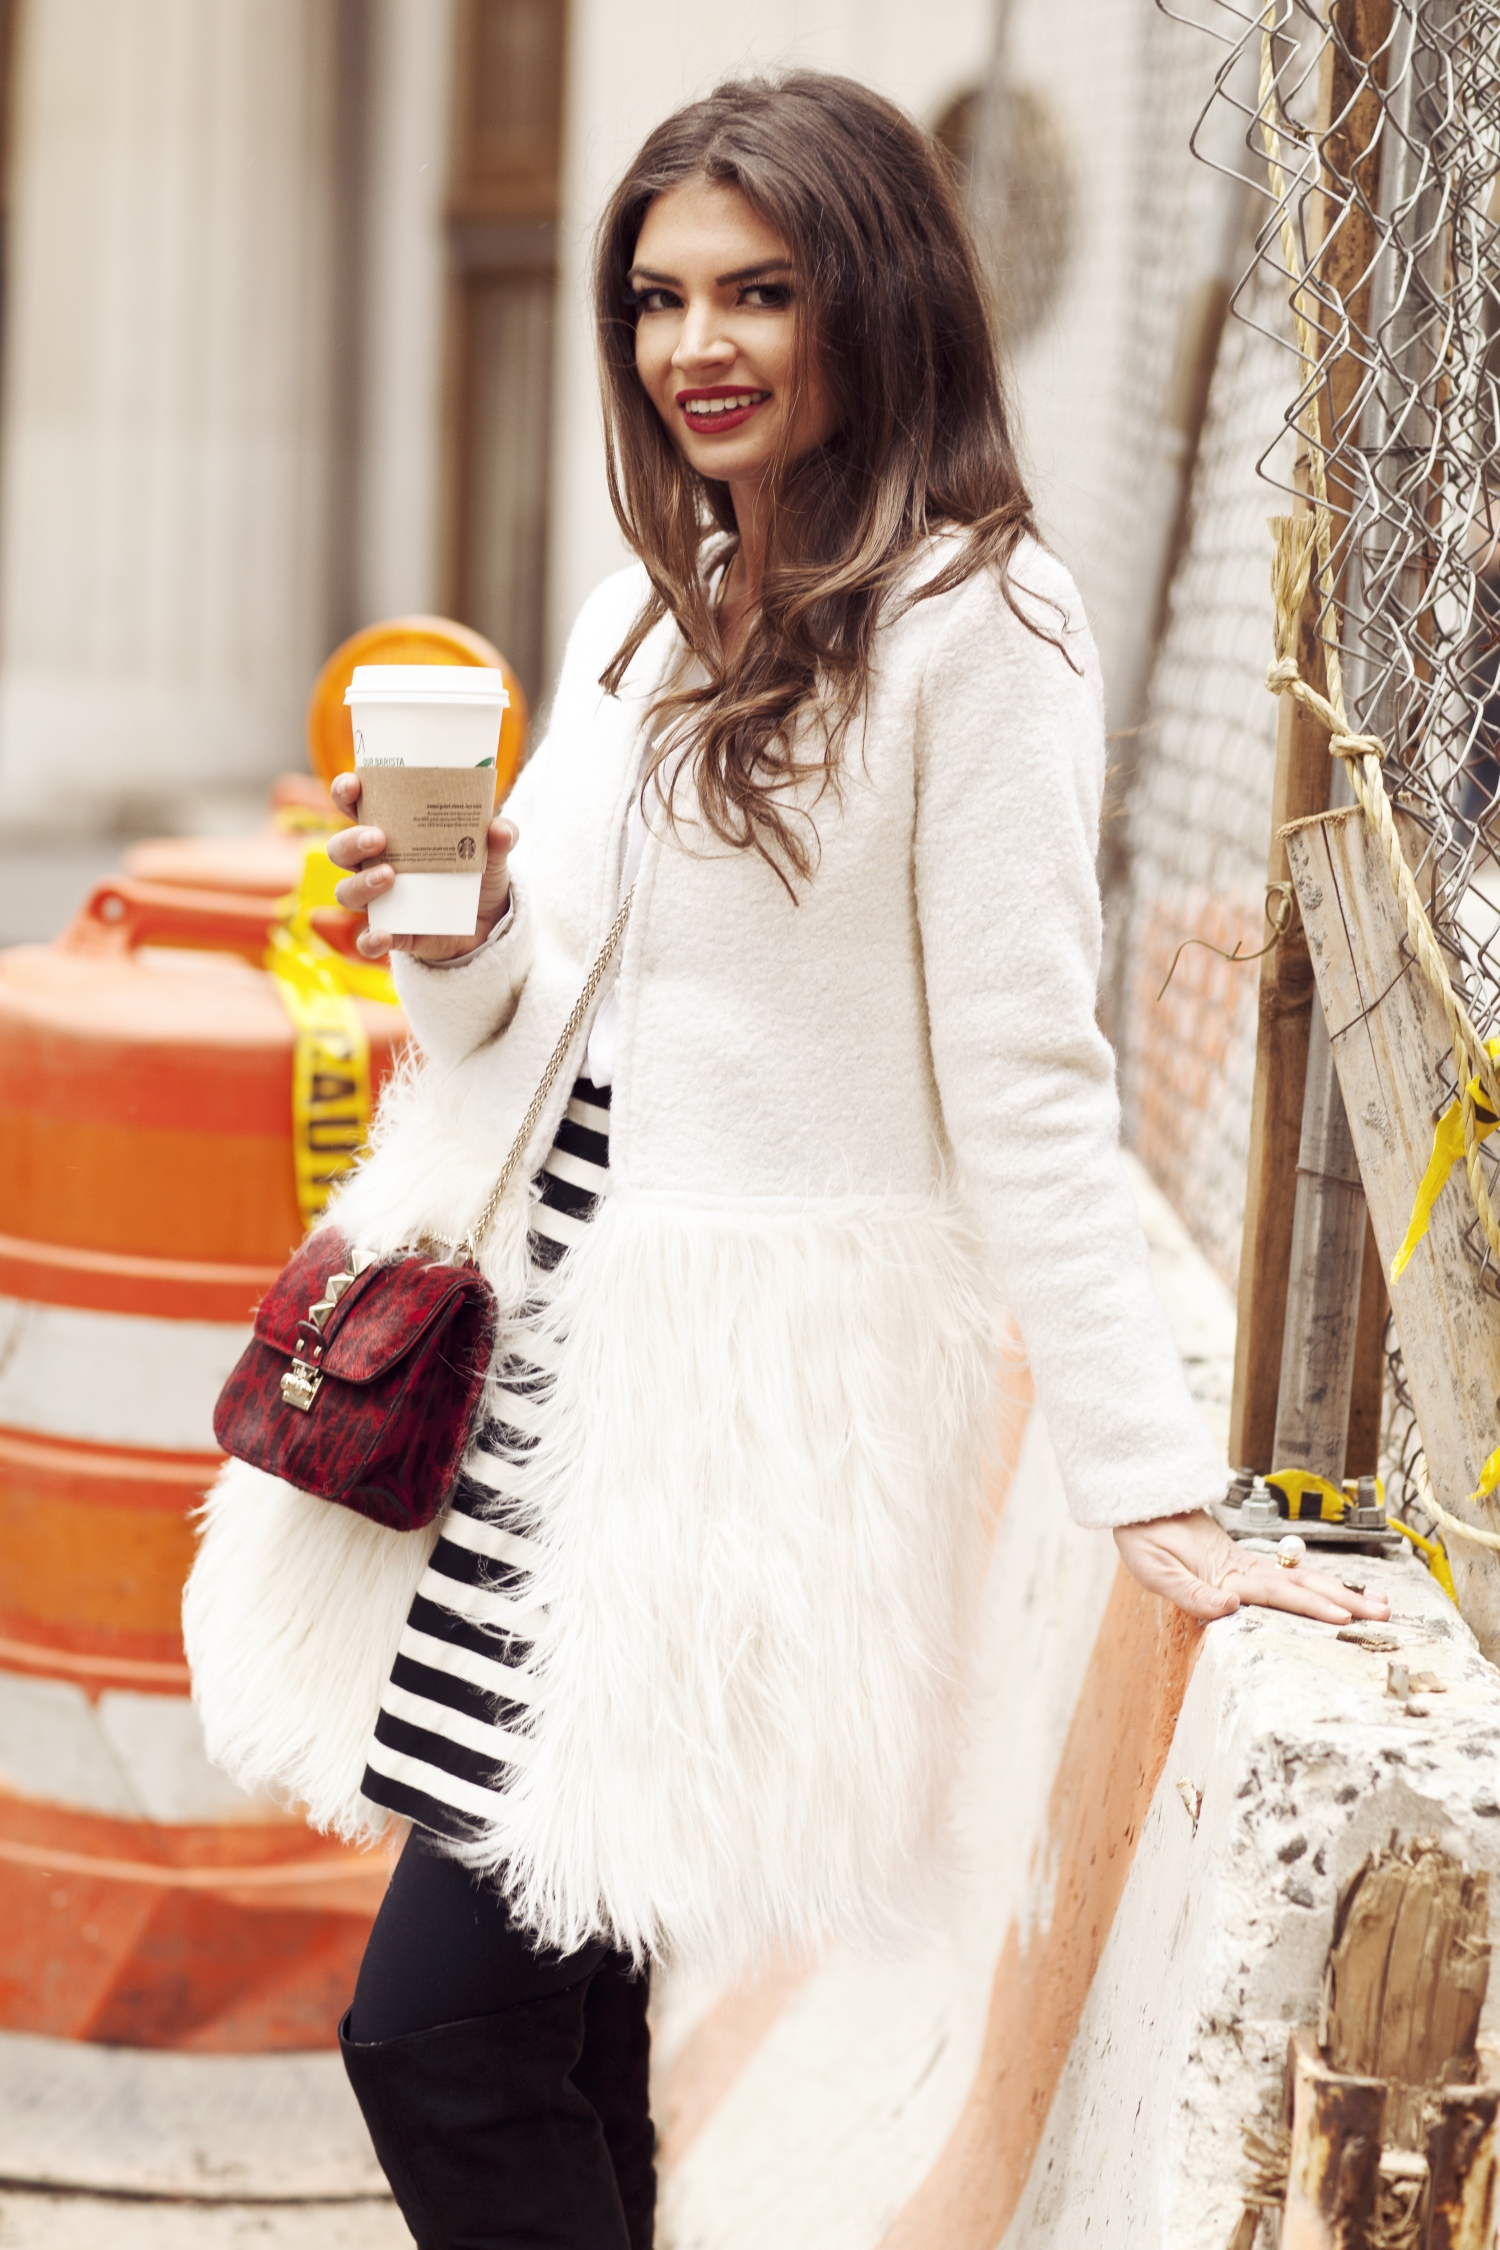 new-york-fashion-week-winter-2015-outfit-fashionhippieloves